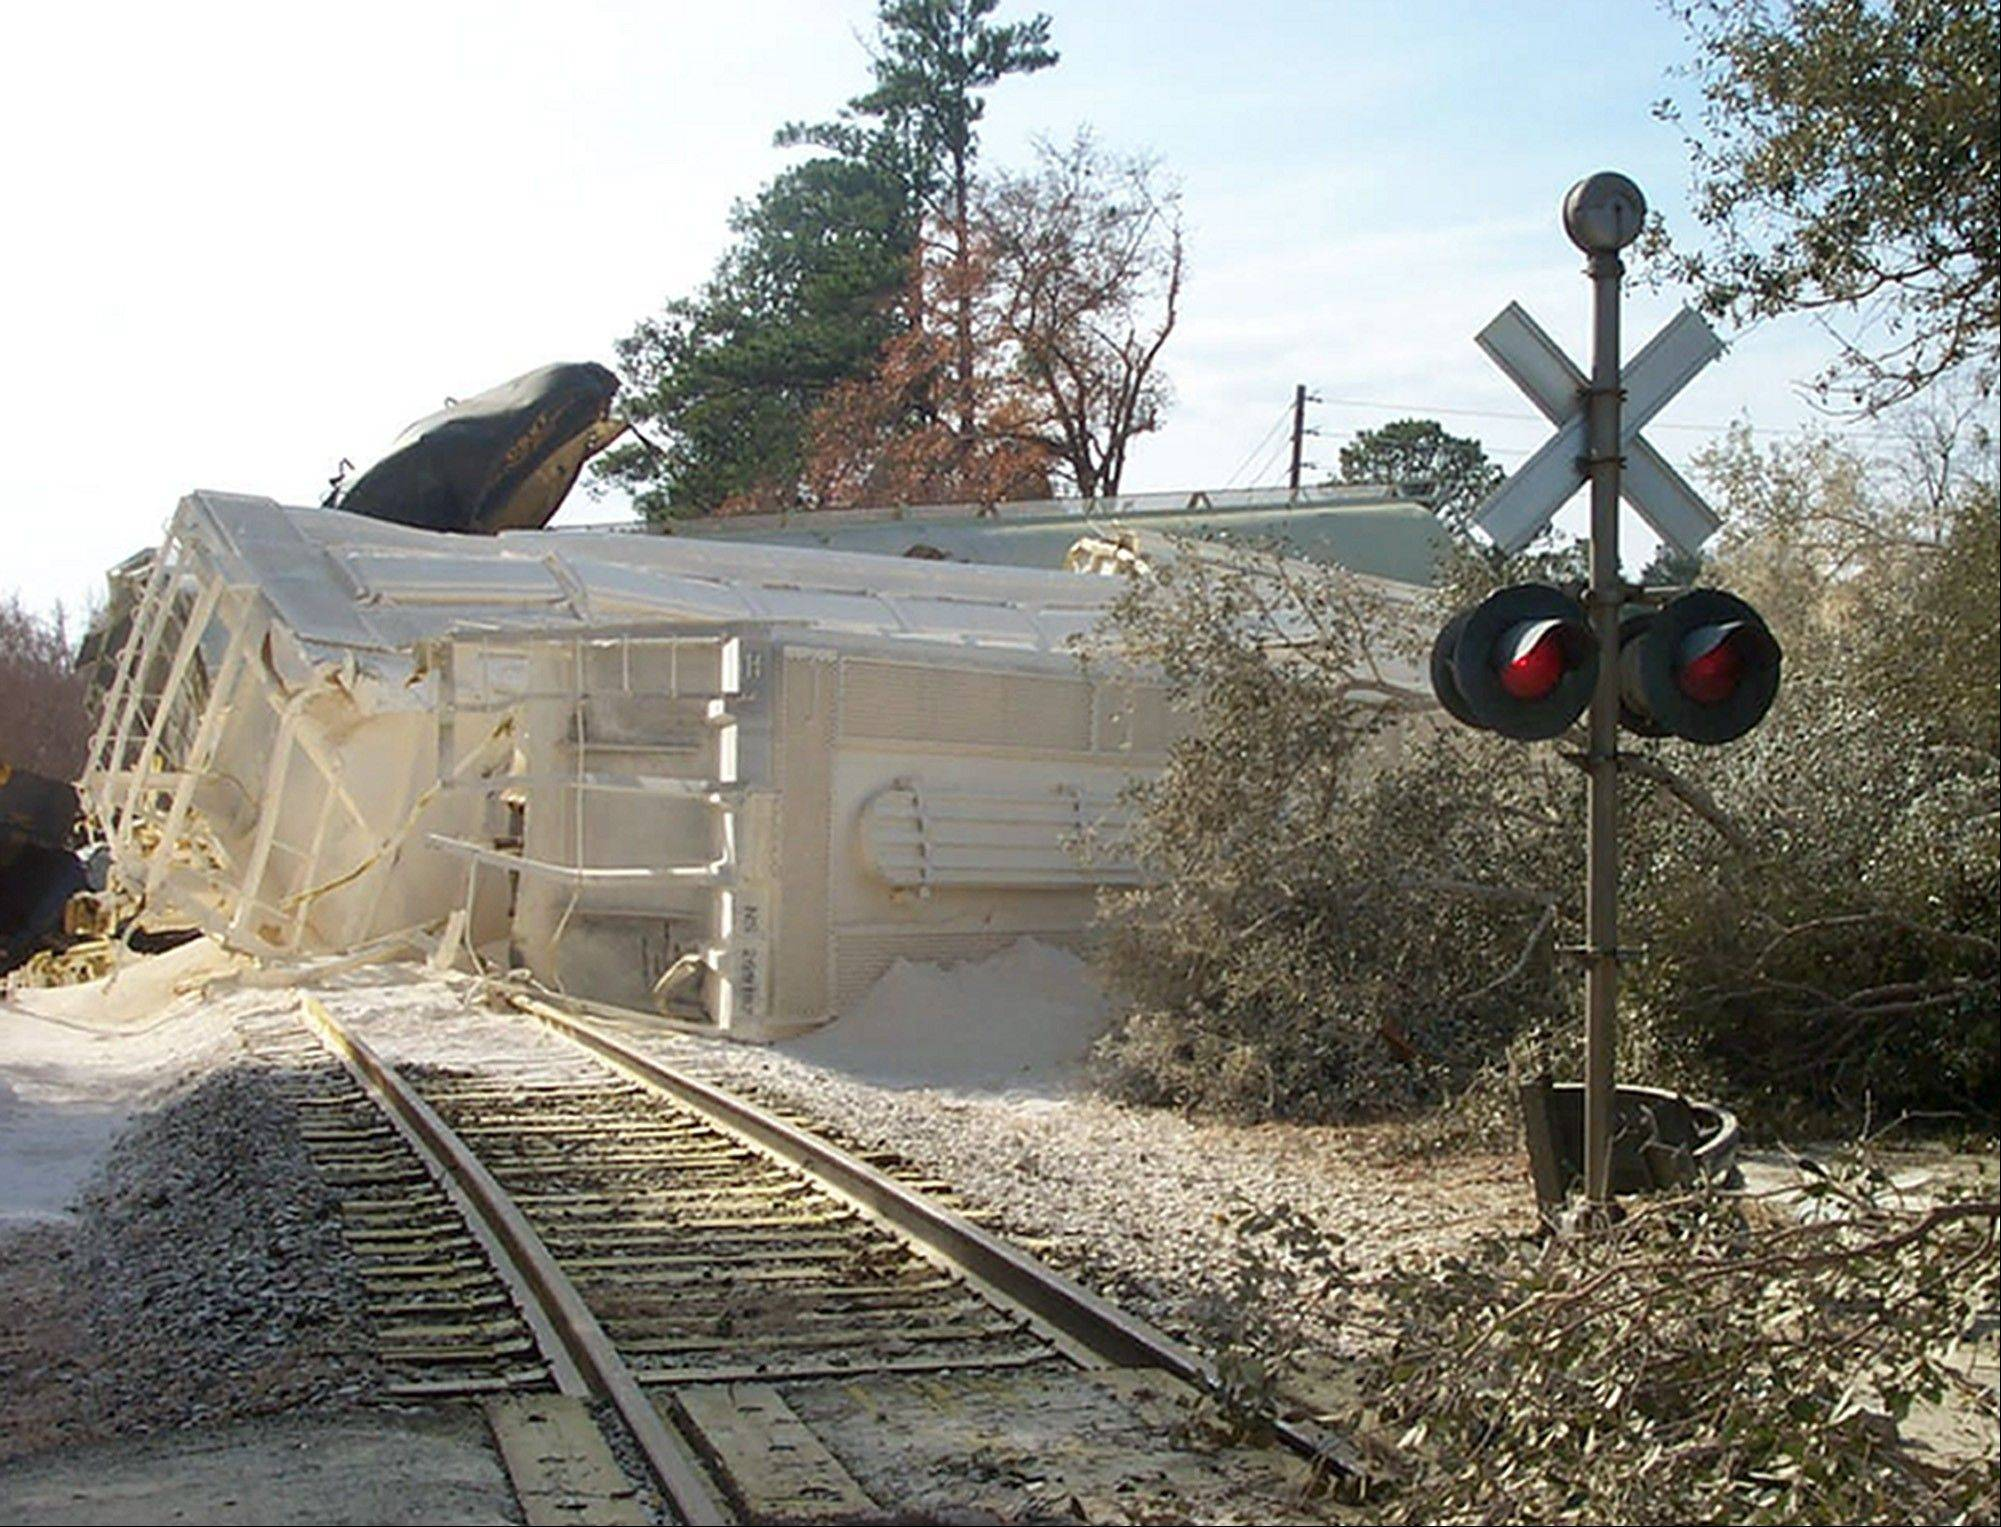 This Jan. 6, 2005, file photo, shows a train derailment where toxic chlorine gas leaked, killing nine people, in Graniteville, S.C.